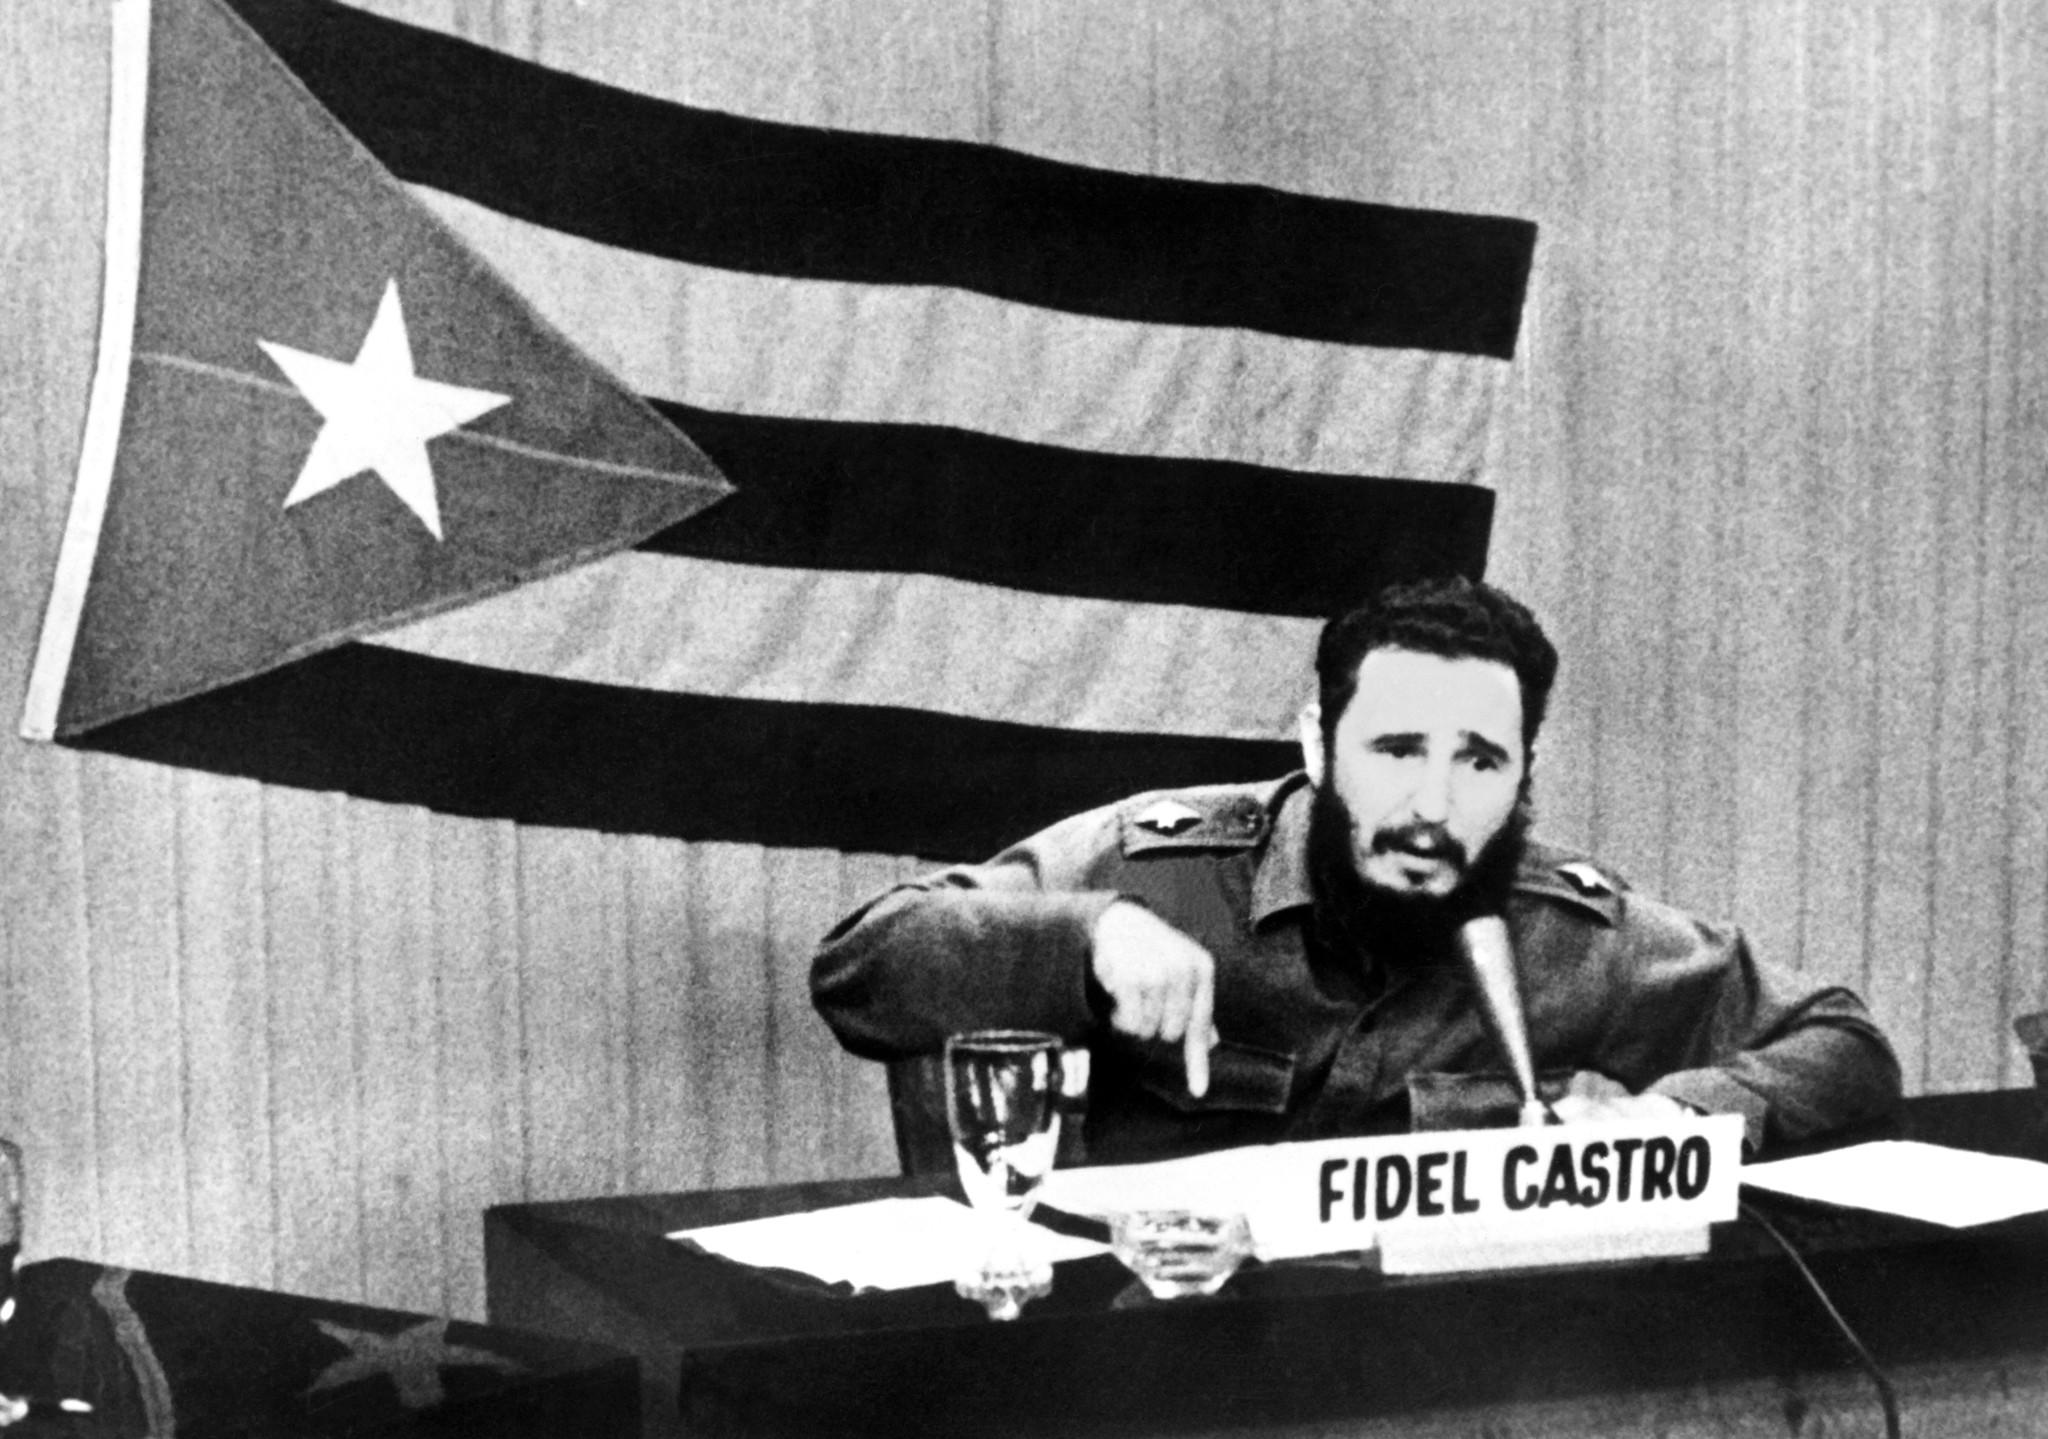 Embassy illnesses in Cuba point to mysterious world of microwave weapons